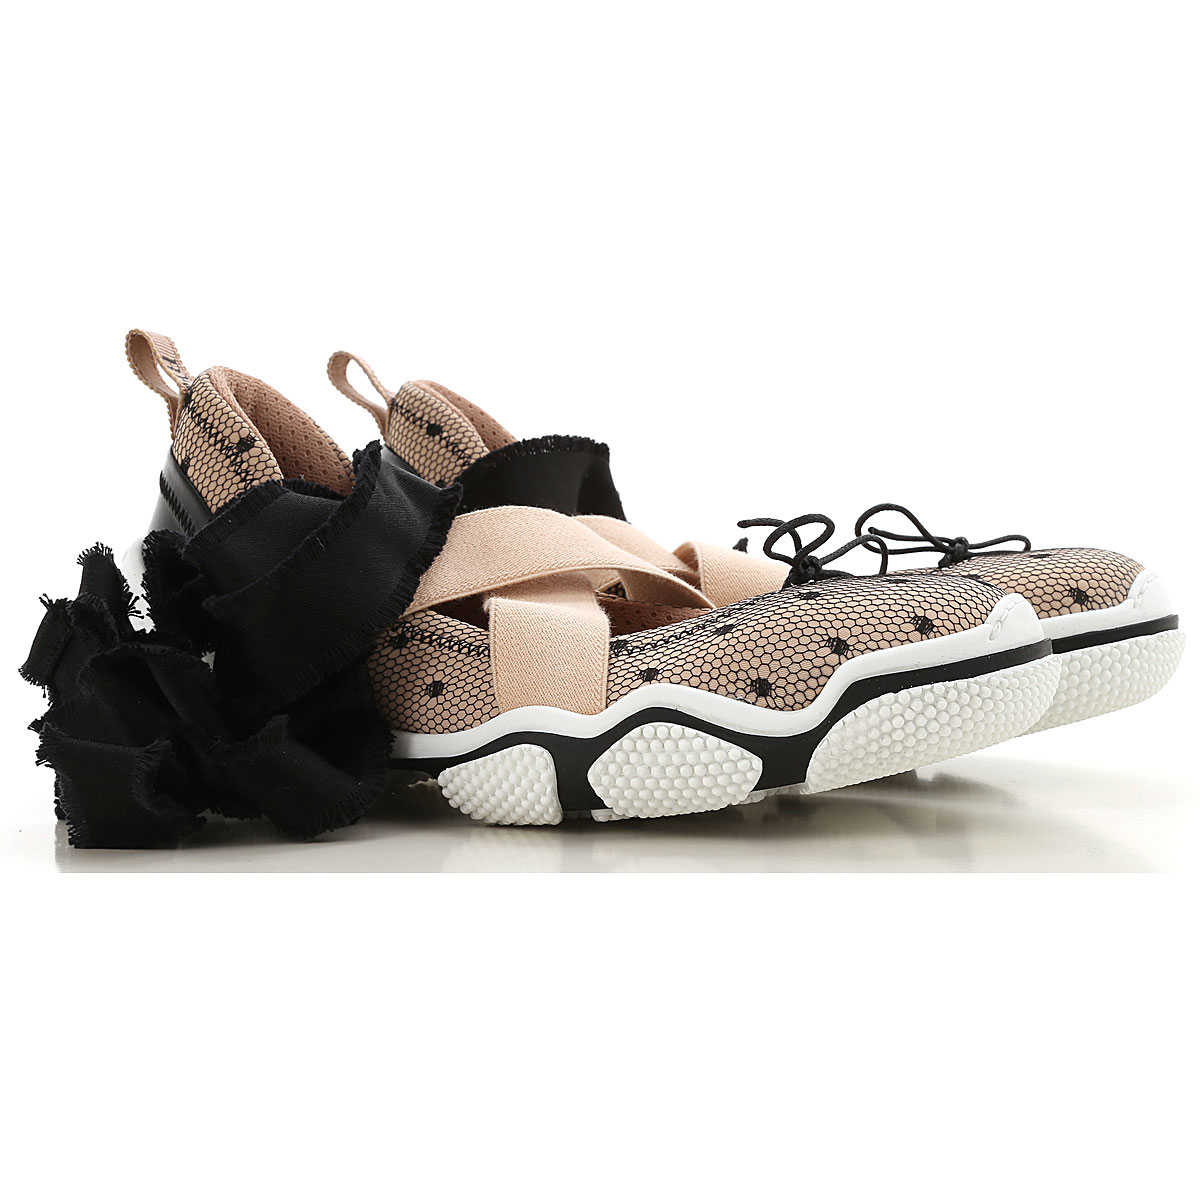 RED Valentino Ballet Flats Ballerina Shoes for Women